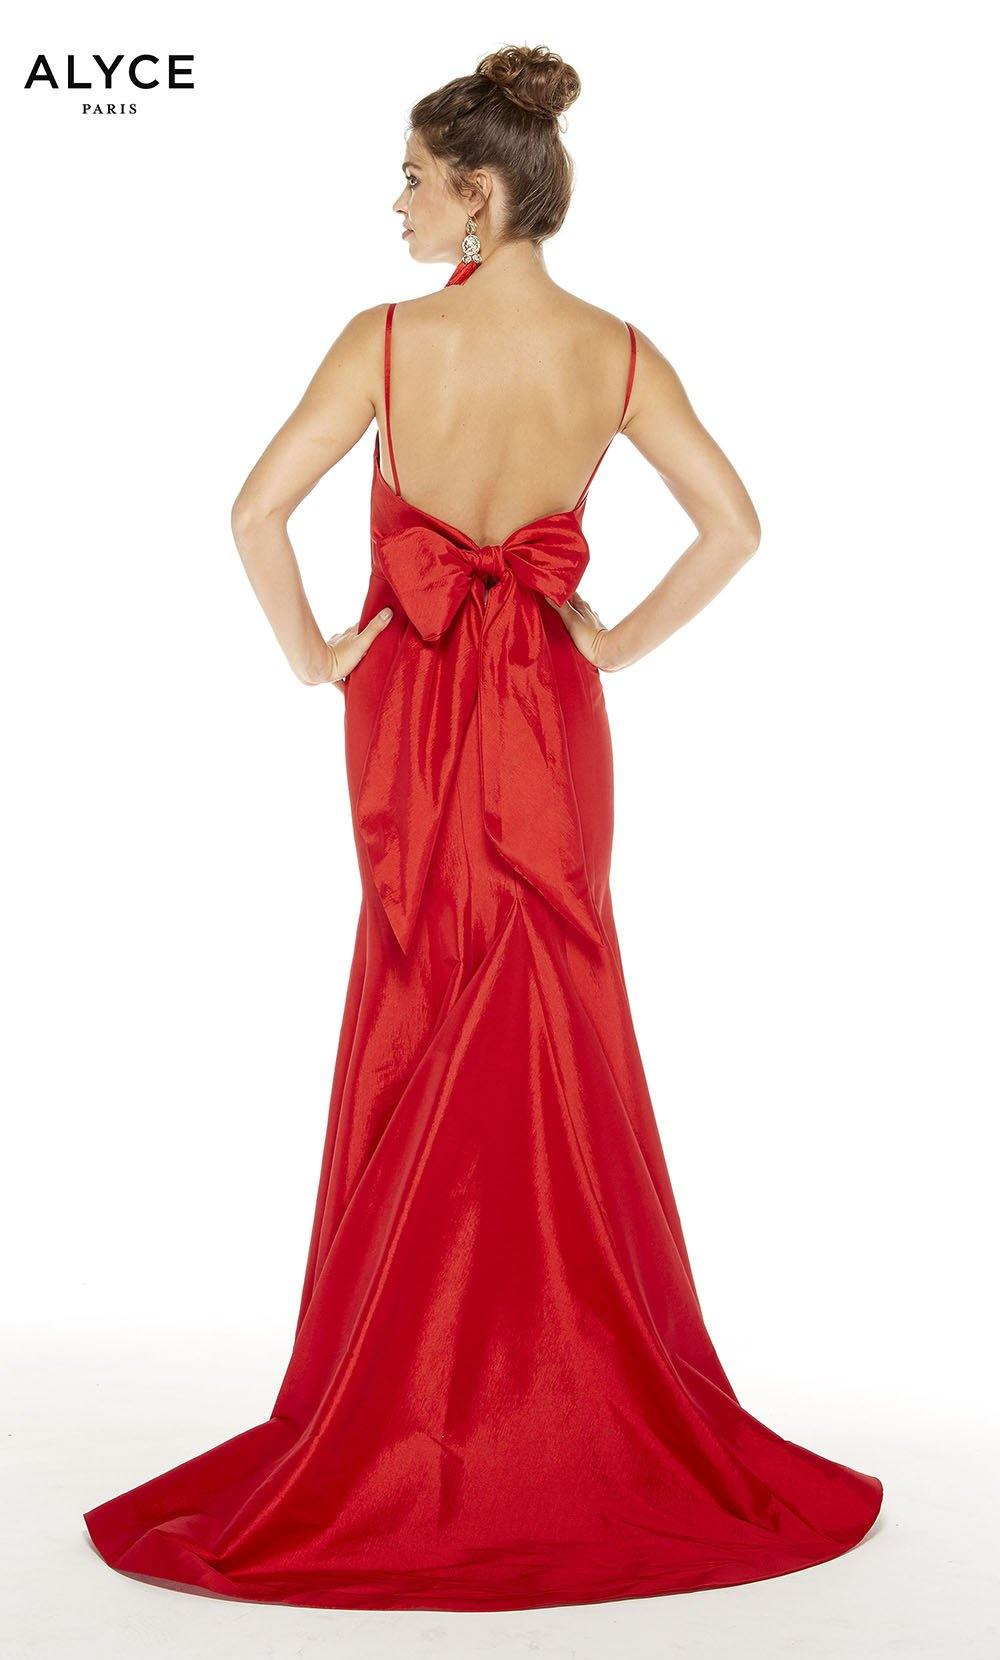 Red formal dress with an open back and bow